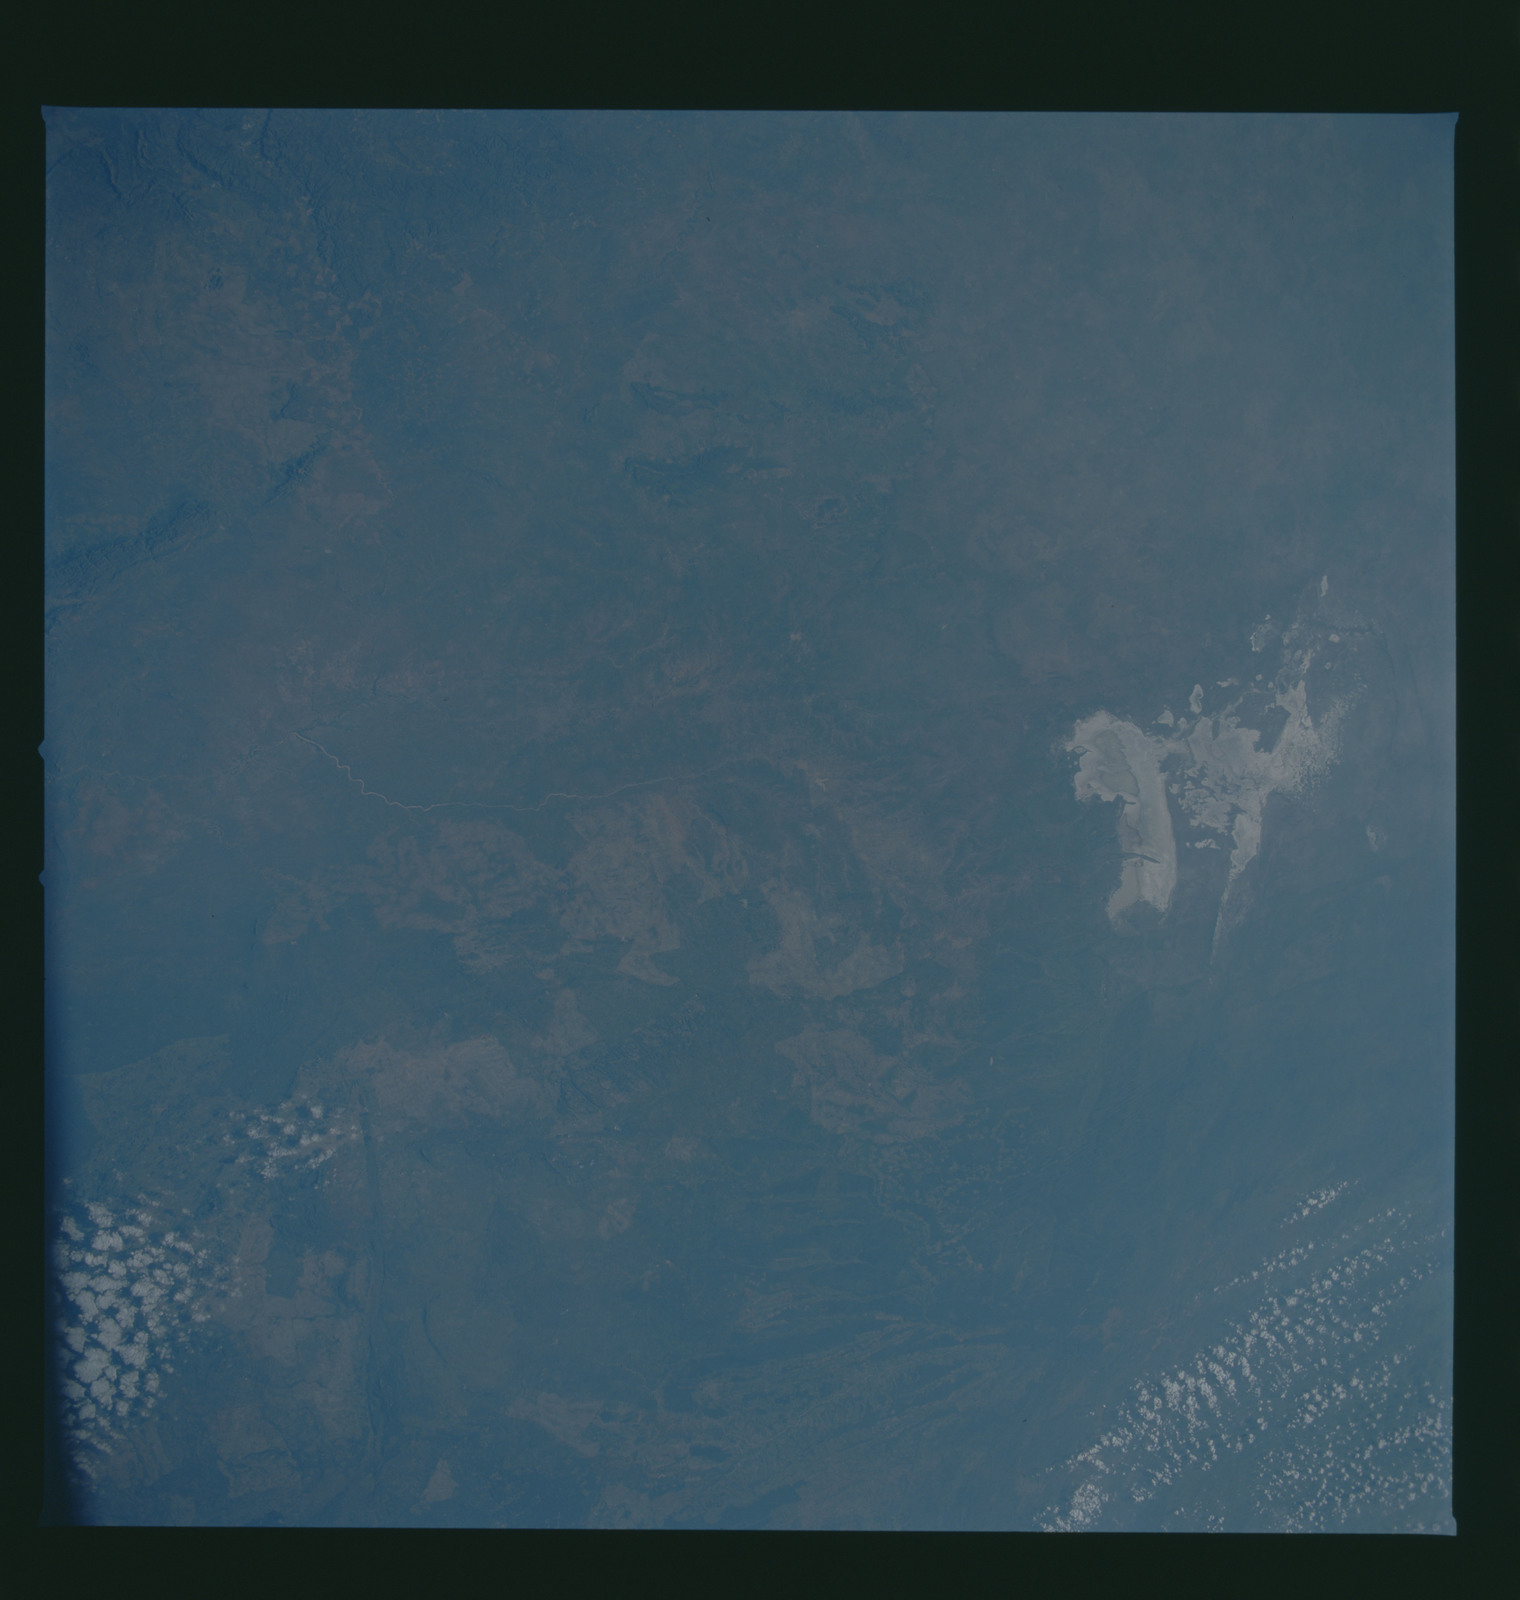 S37-96-046 - STS-037 - Earth observations taken from OV-104 during STS-37 mission